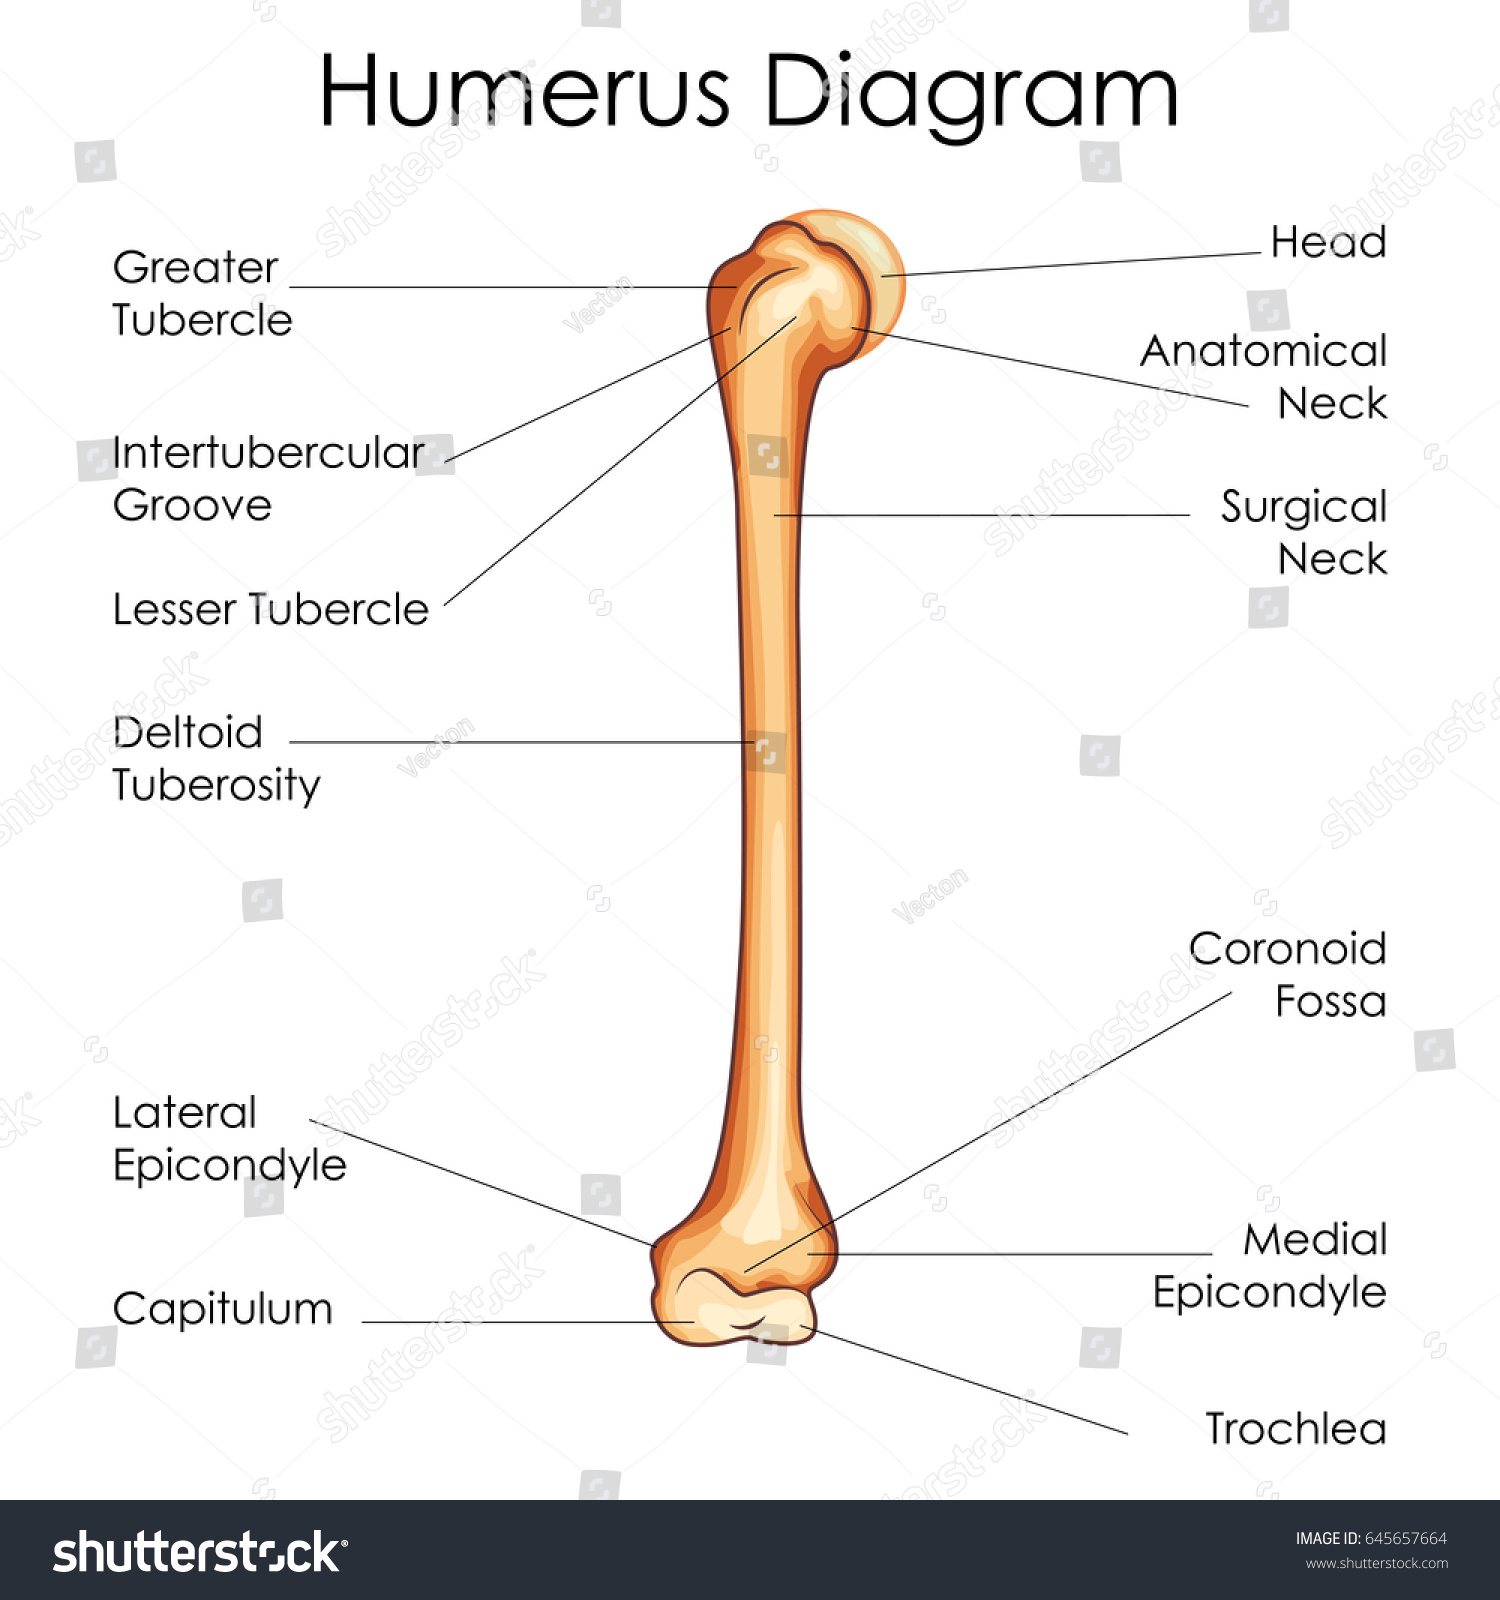 humerus bone diagram wiring for hot water heater element medical education chart biology stock